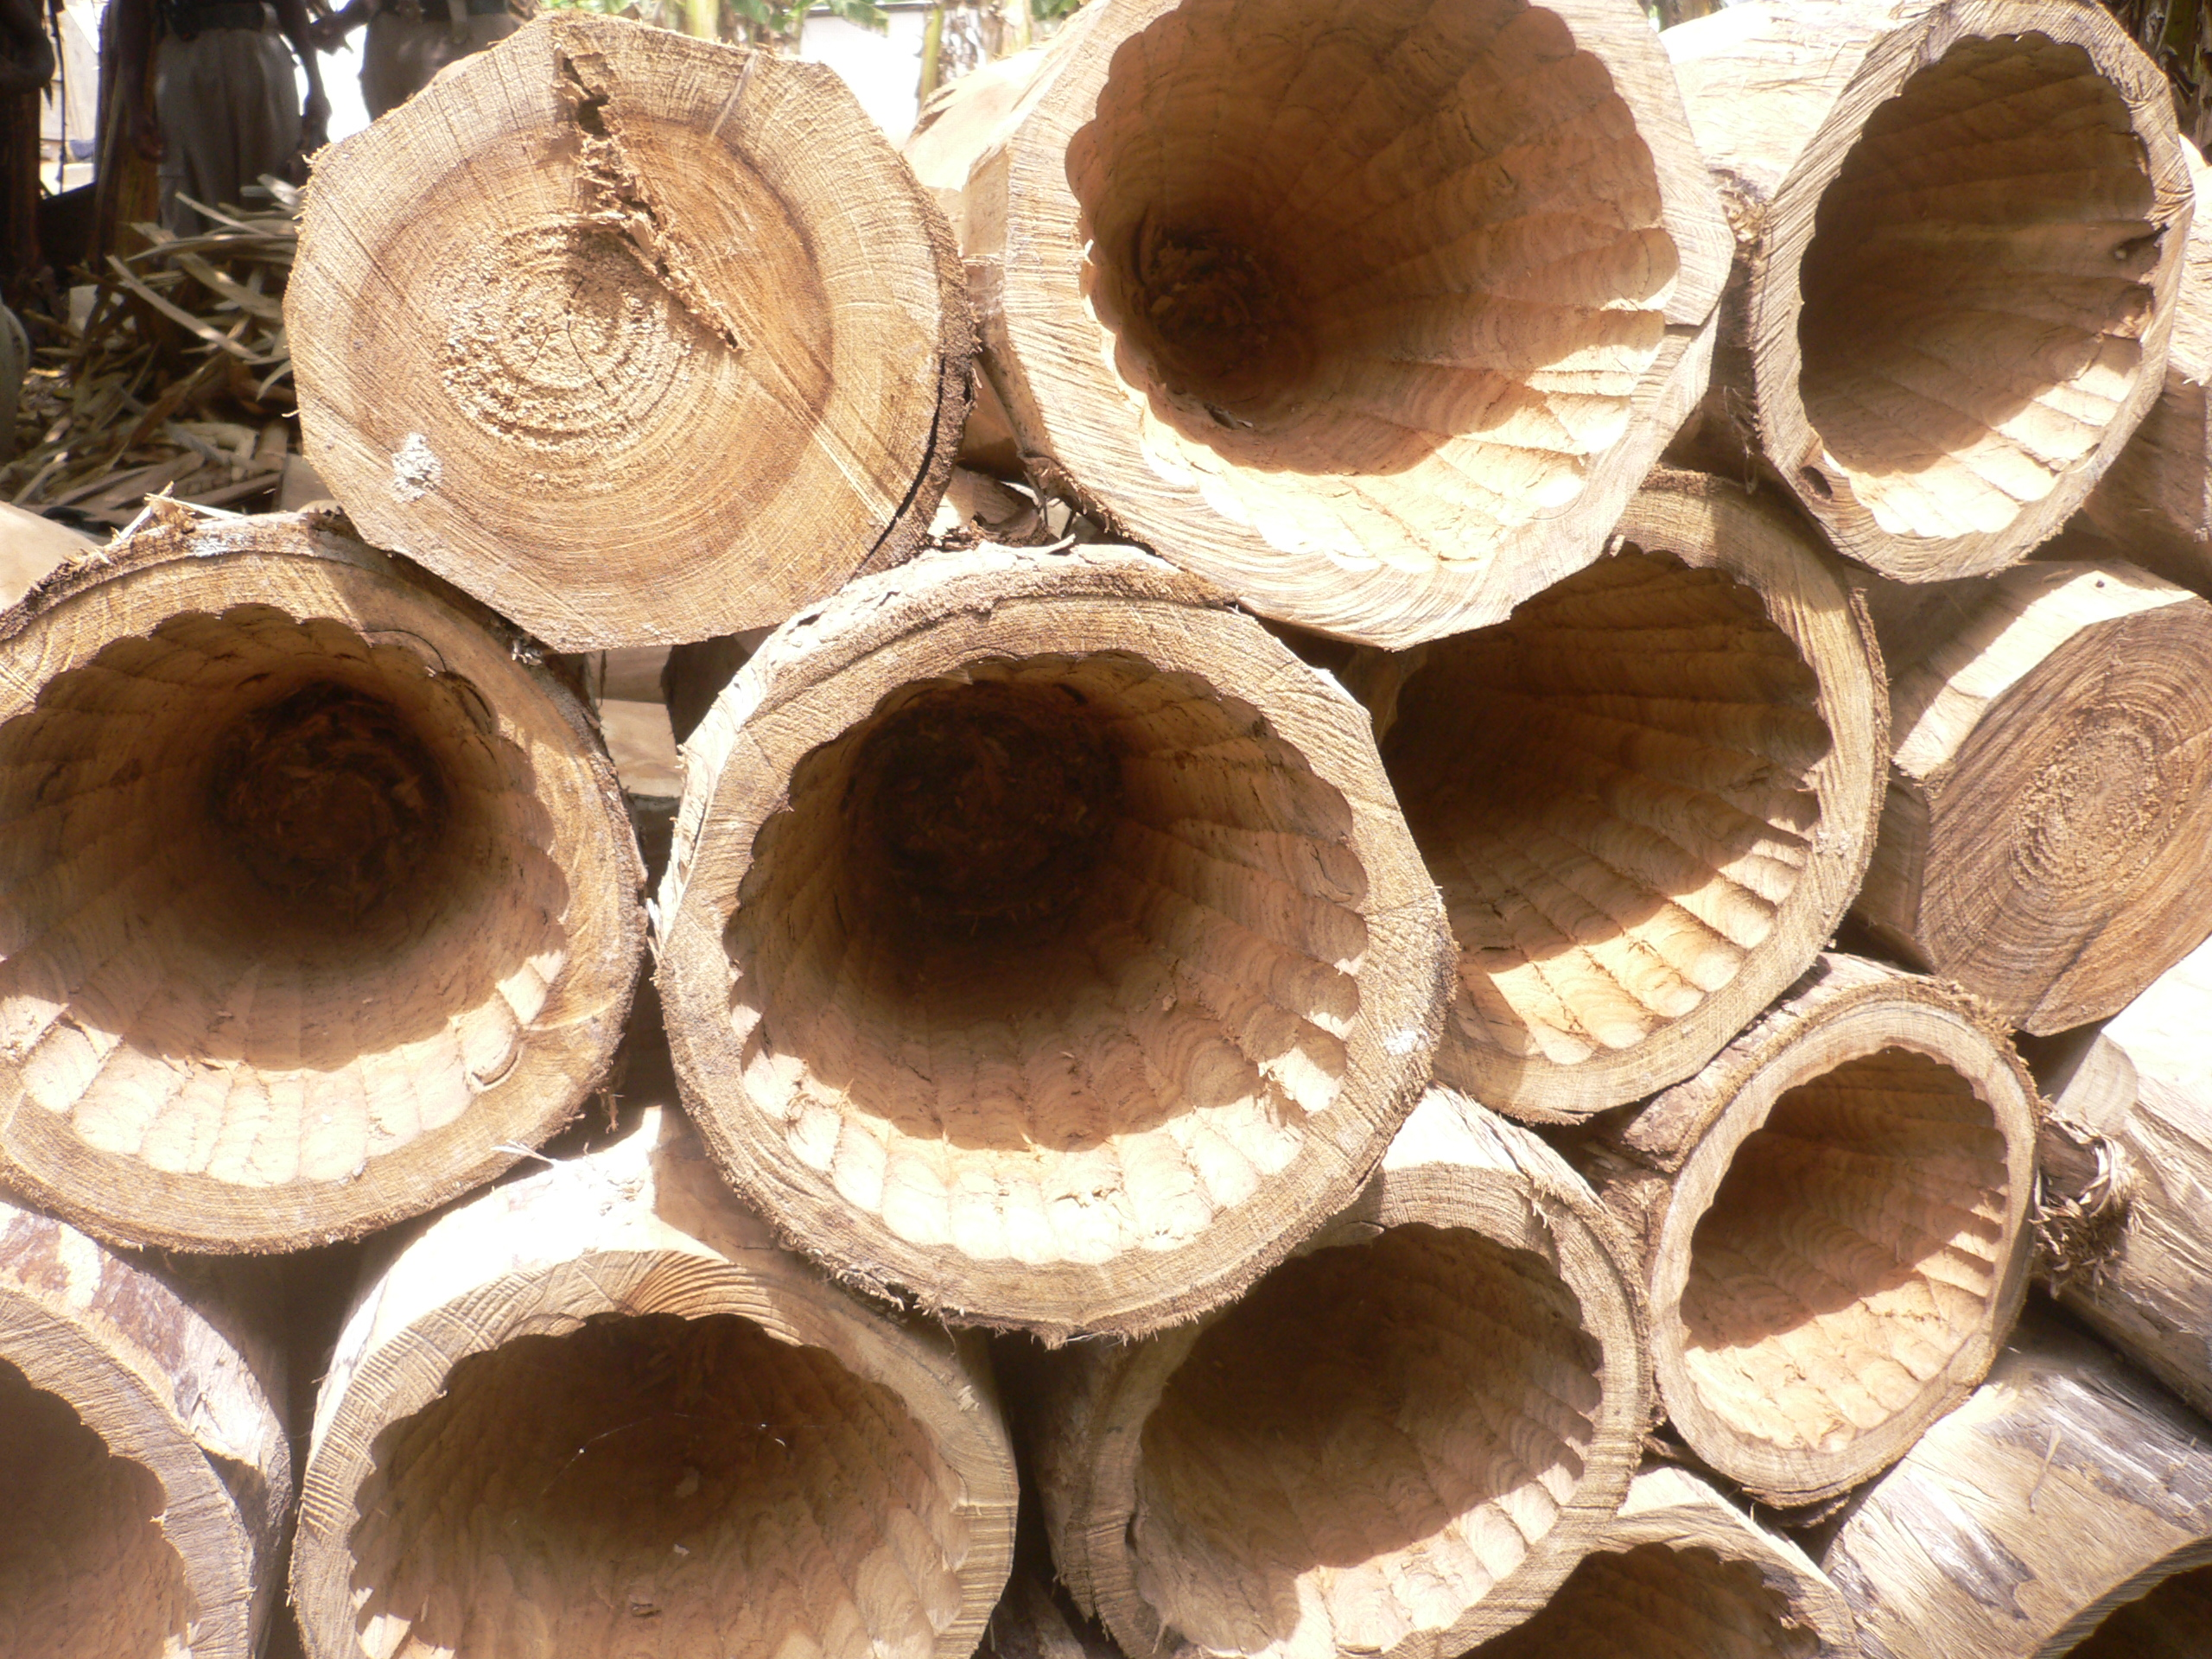 hollowed out trunks to be transformed into drums